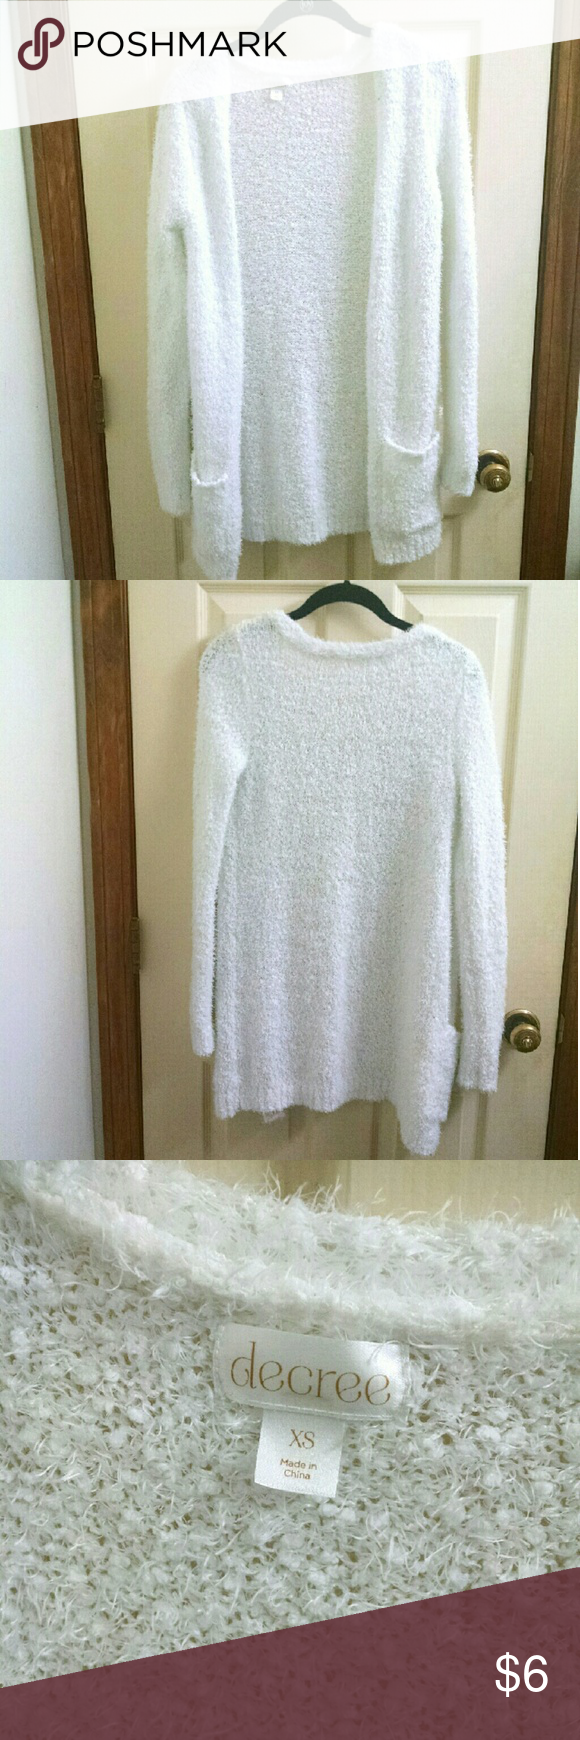 Fuzzy Sweater Fuzzy, white cover up sweater with pockets in the front. Brand - Decree, size - XS. 100% polyester. Gently used. Decree Sweaters